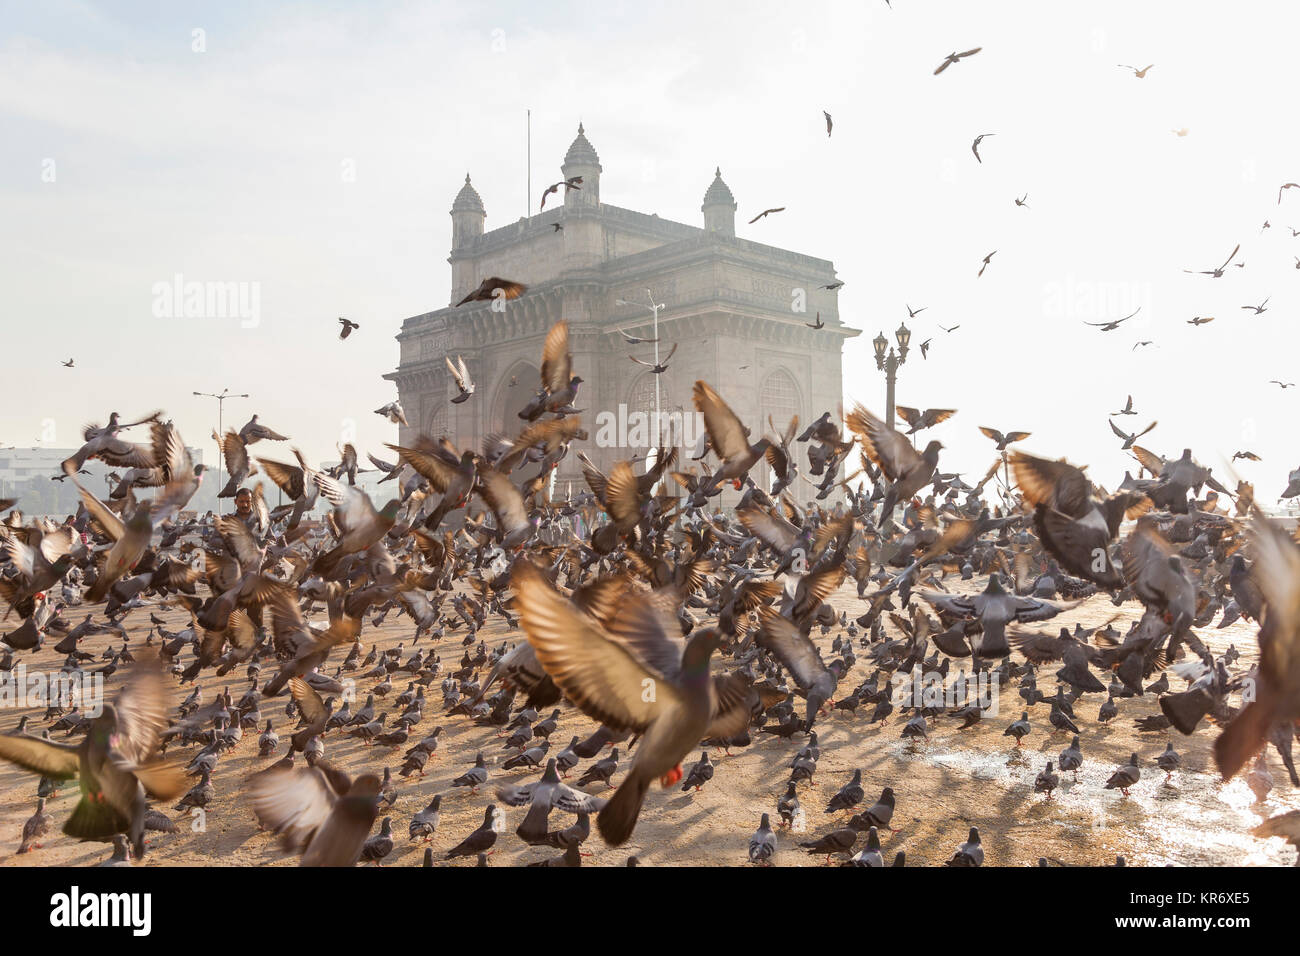 Large flock of pigeons on open space with arch monument in background. - Stock Image